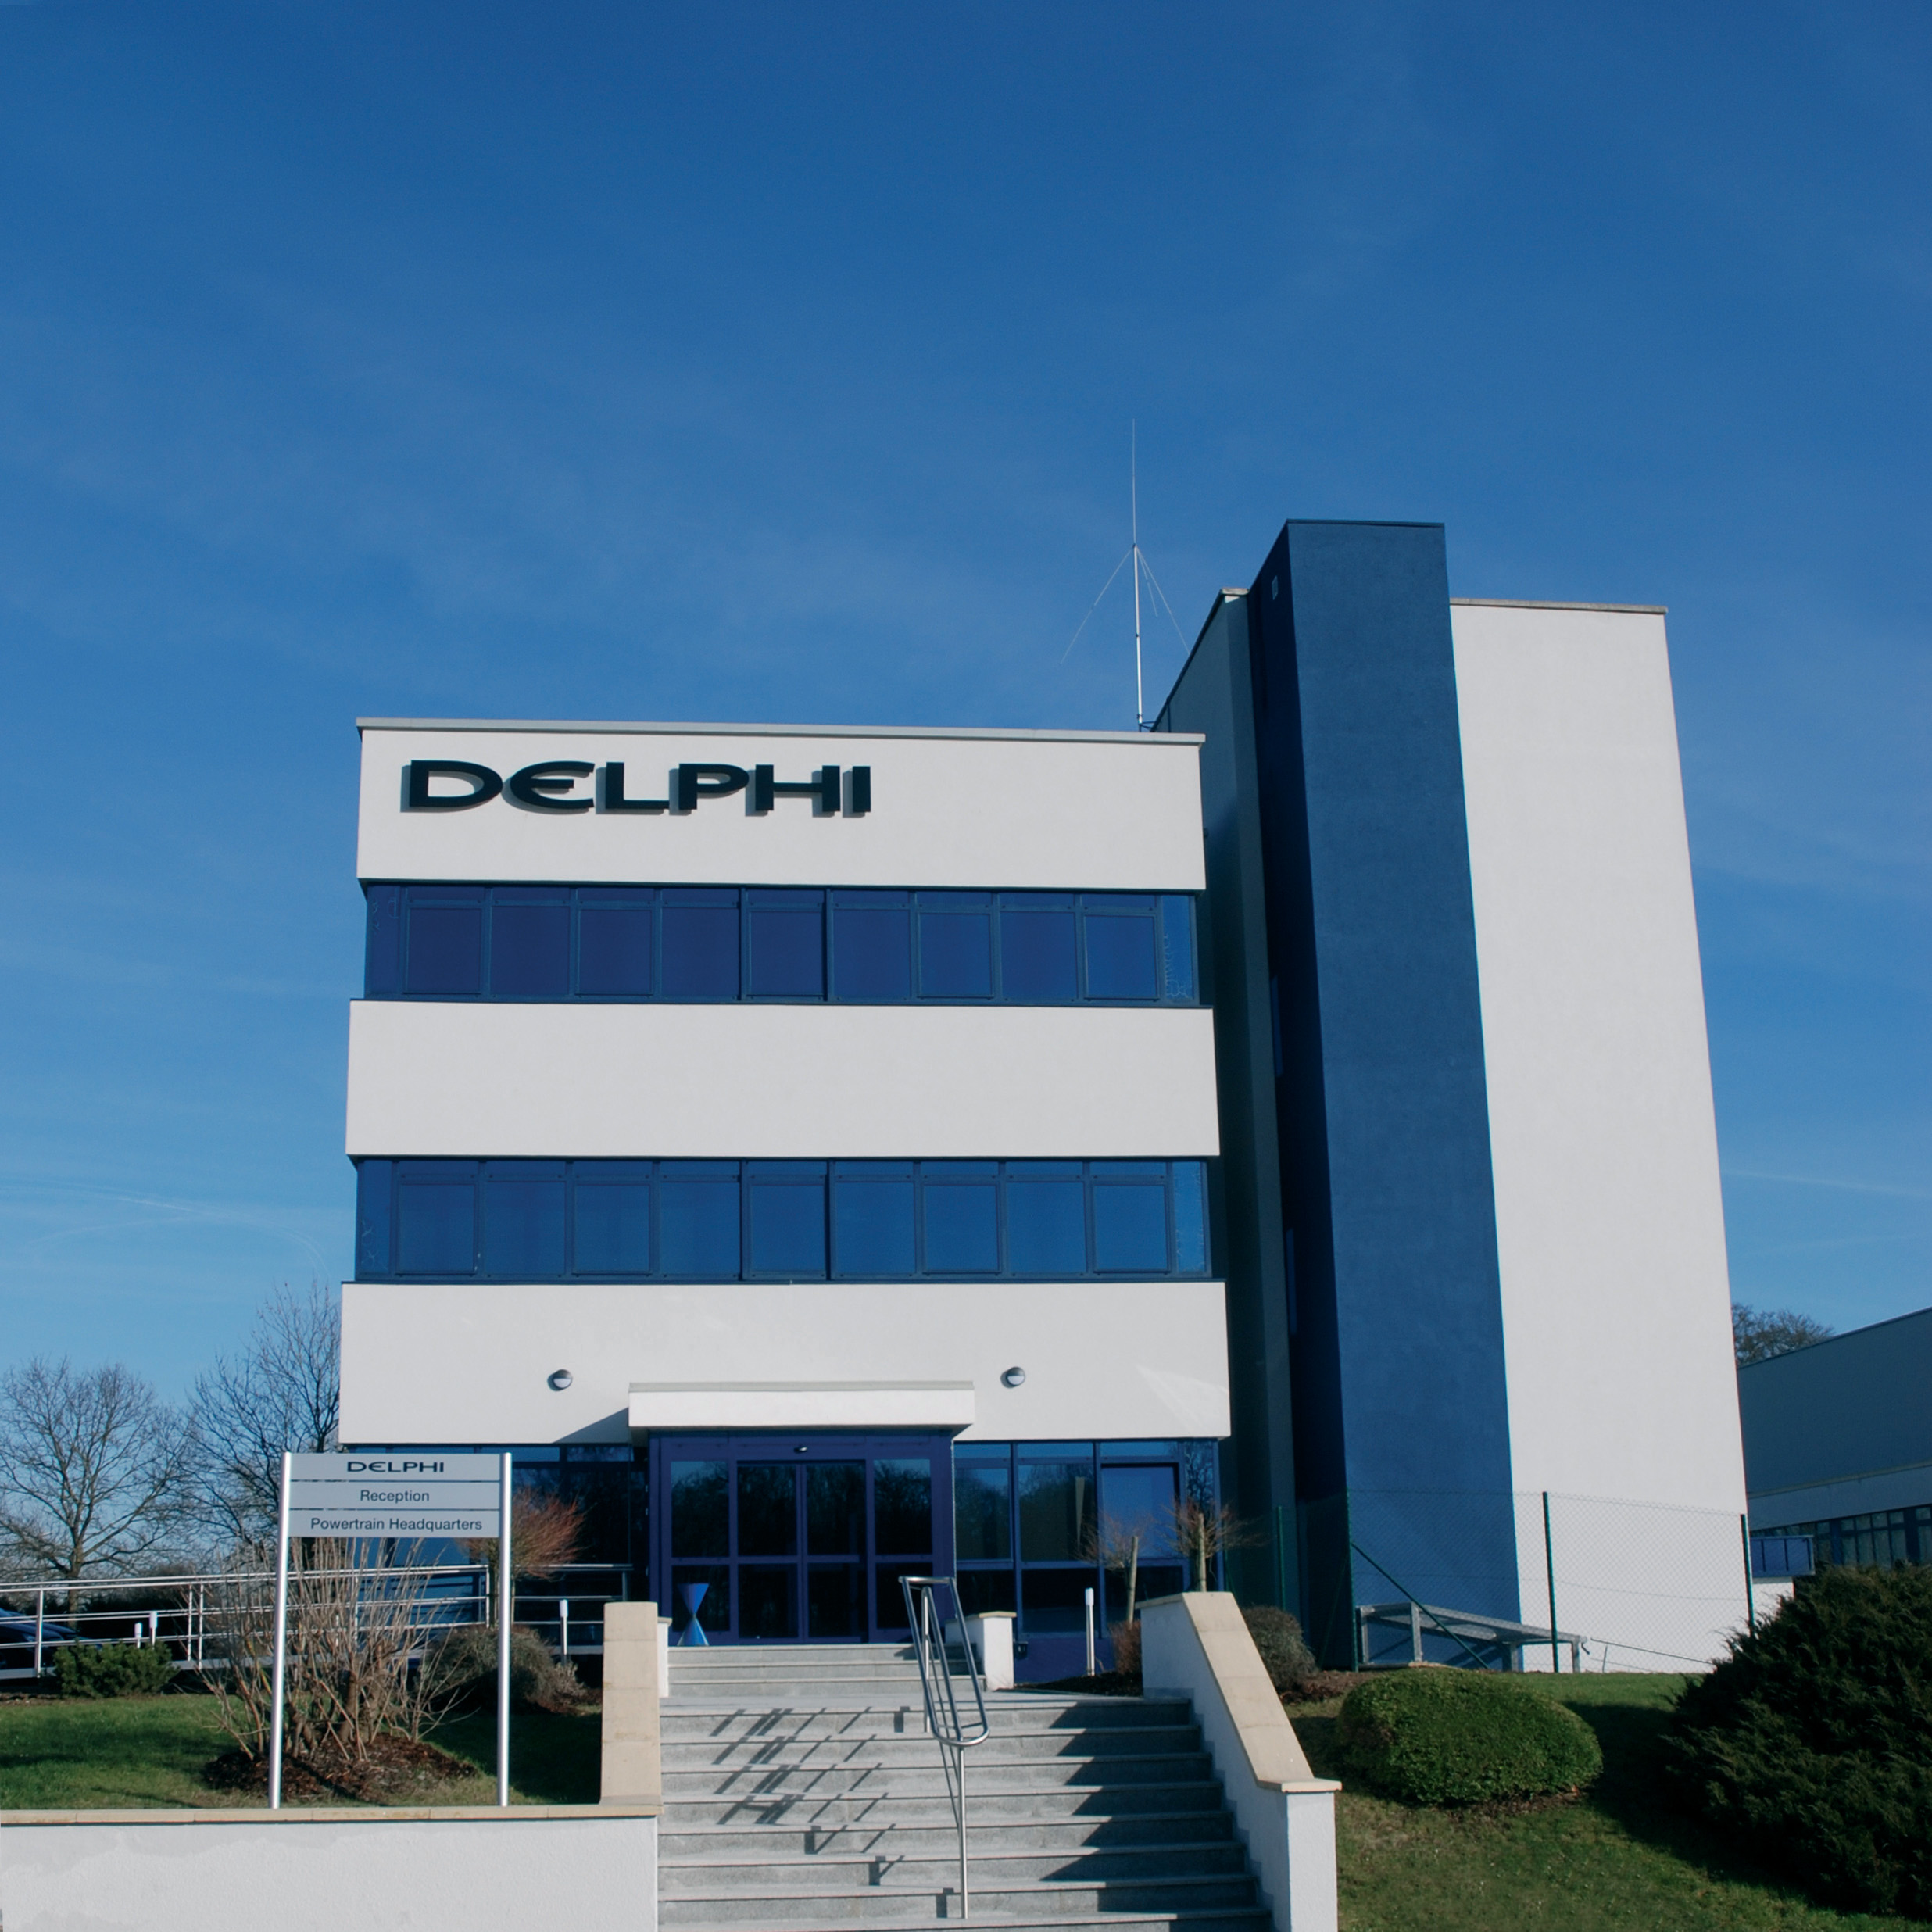 Wednesday's Web Link – DELPHI: GM files for Chapter 11 as Delphi says it's emerging